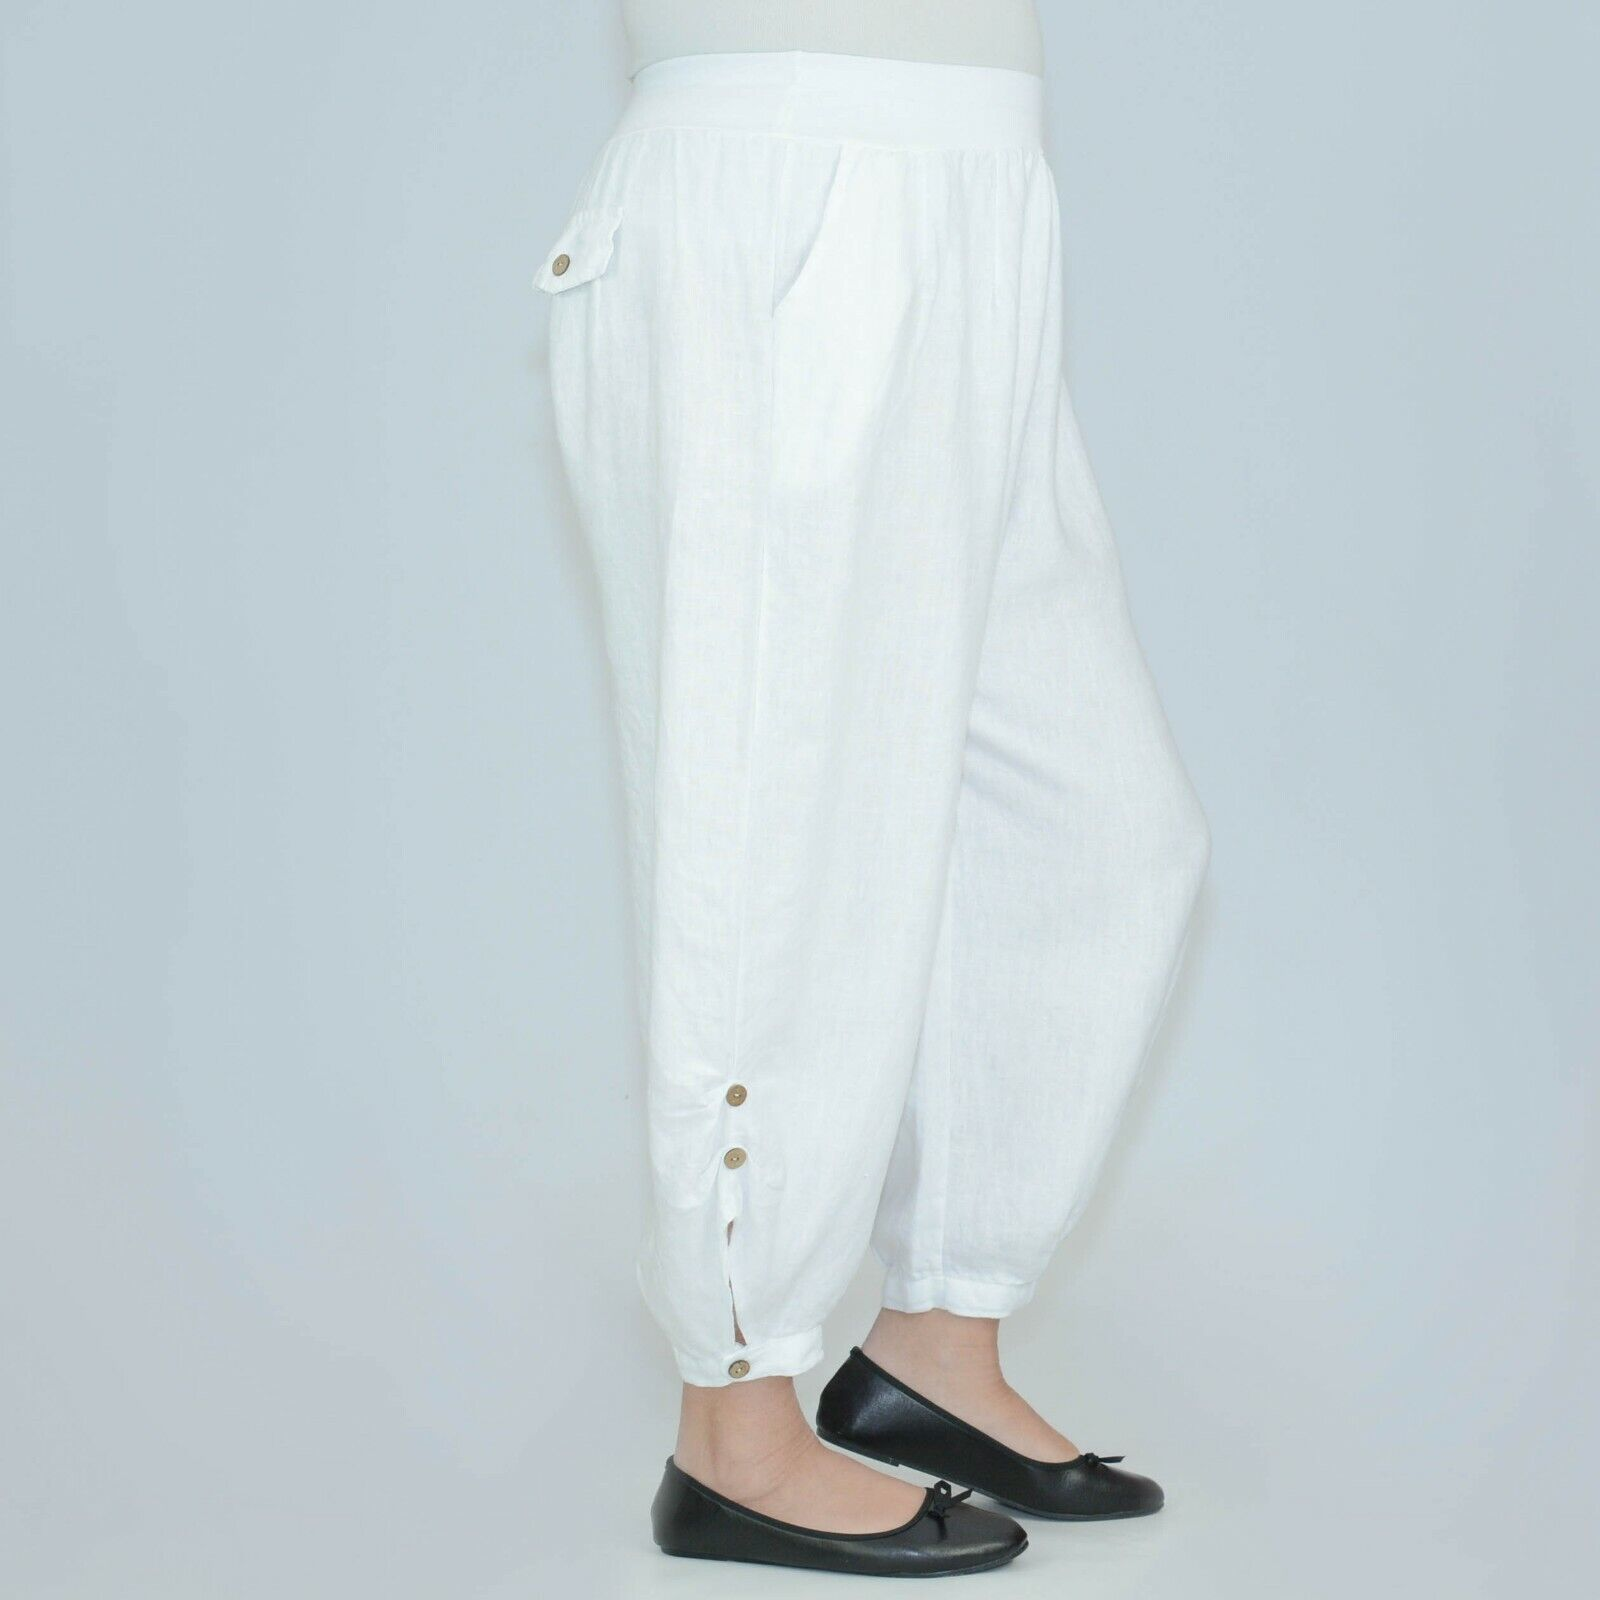 Plus Size Loose Linen Trousers 16 18 20 22 24 26 28 30 32 Womens Summer 8336